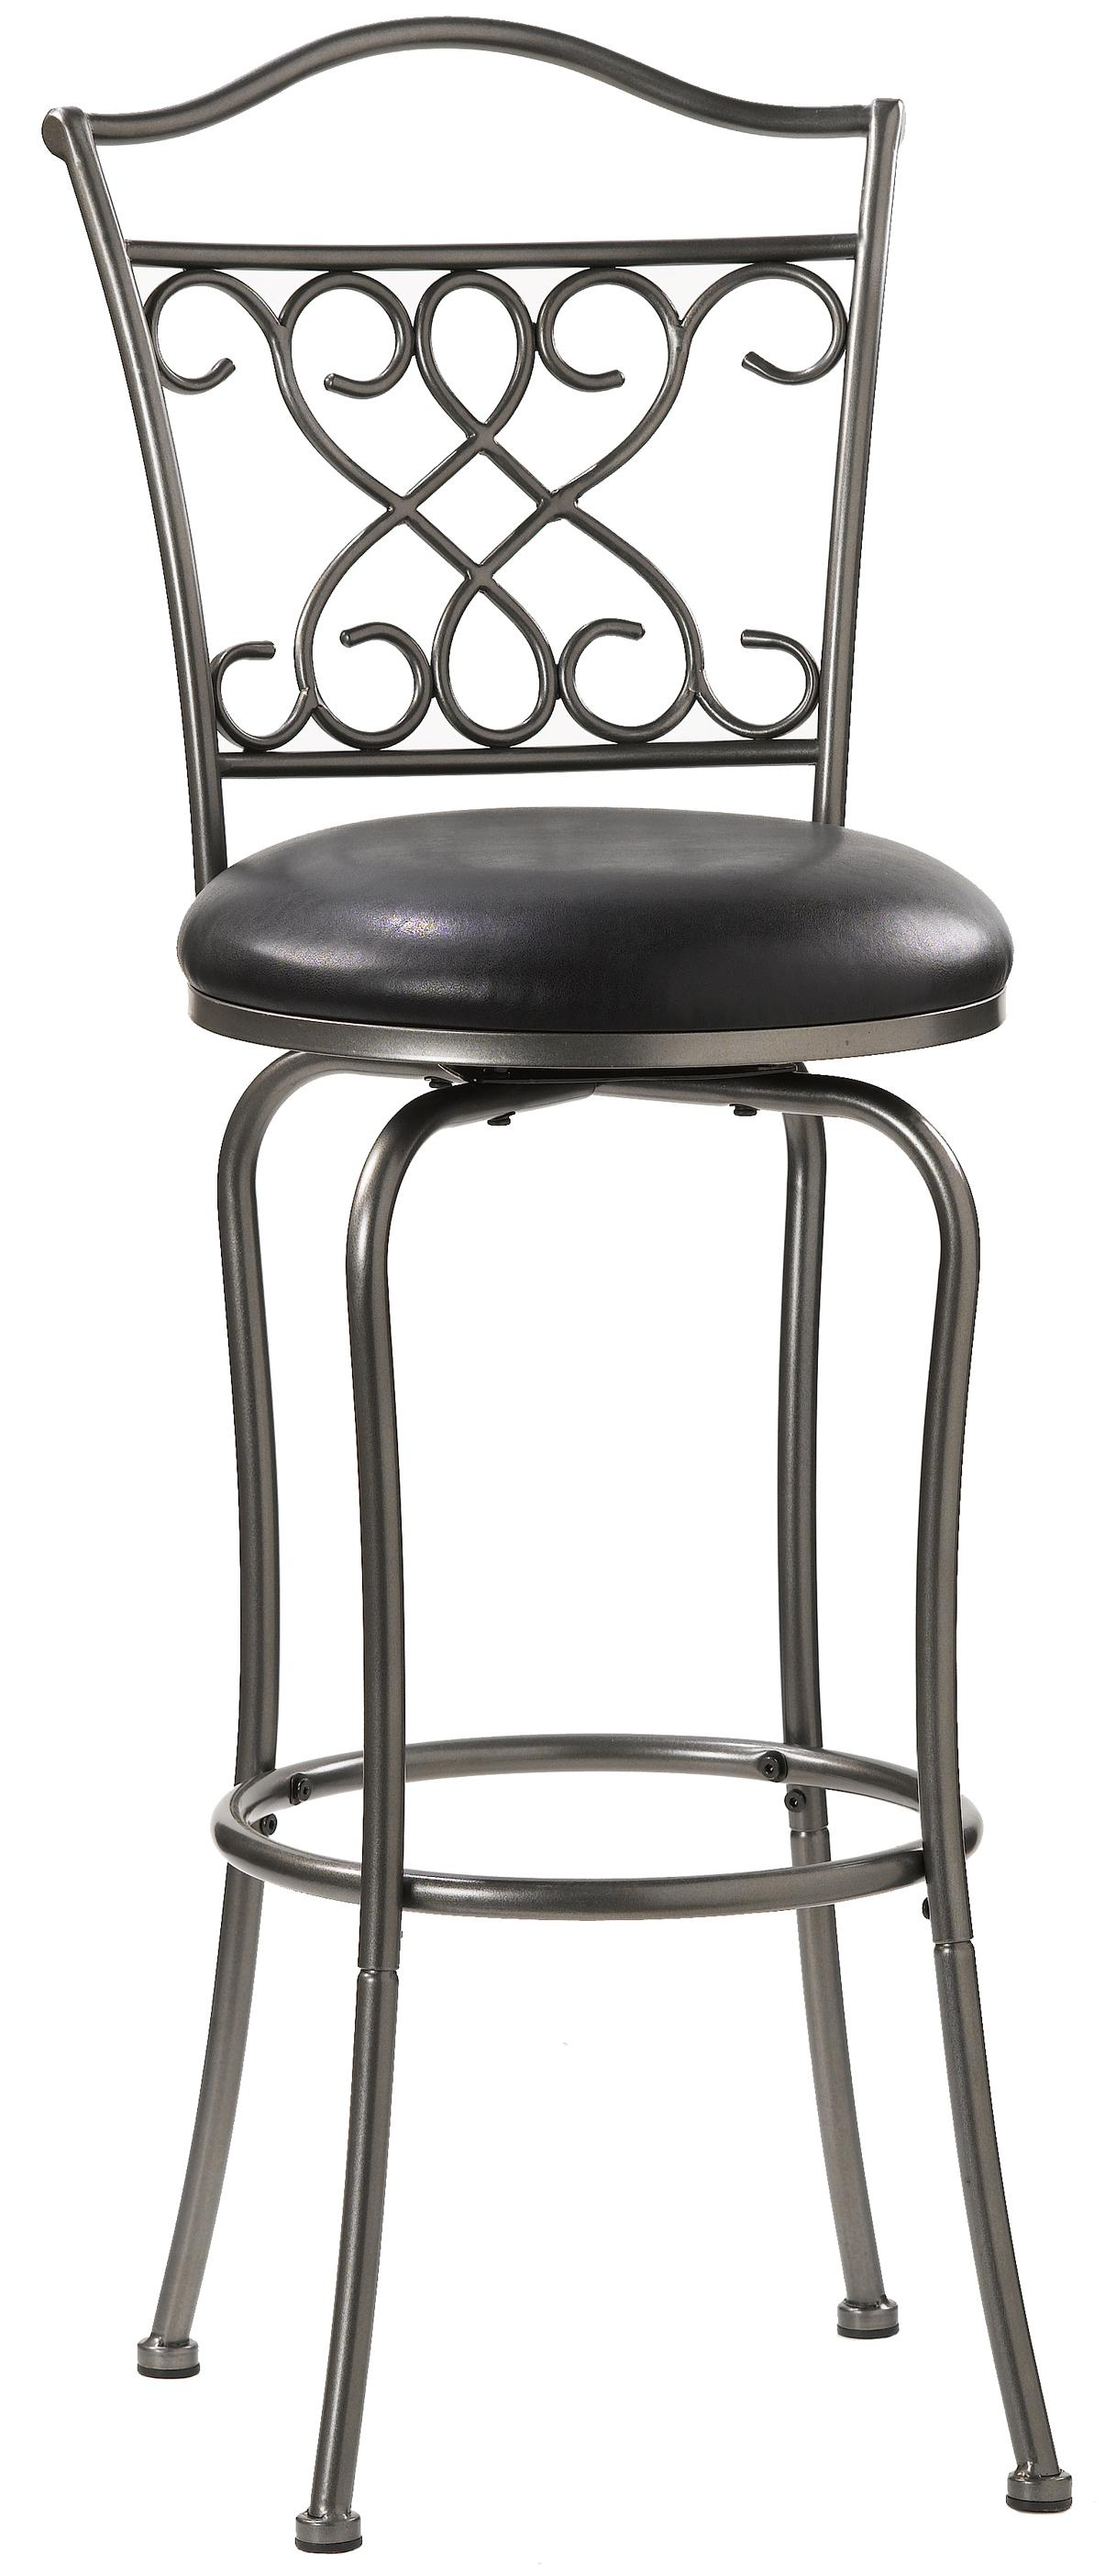 "Hillsdale Metal Stools 24"" Counter Height Wayland Swivel Stool - Item Number: 4127-821"